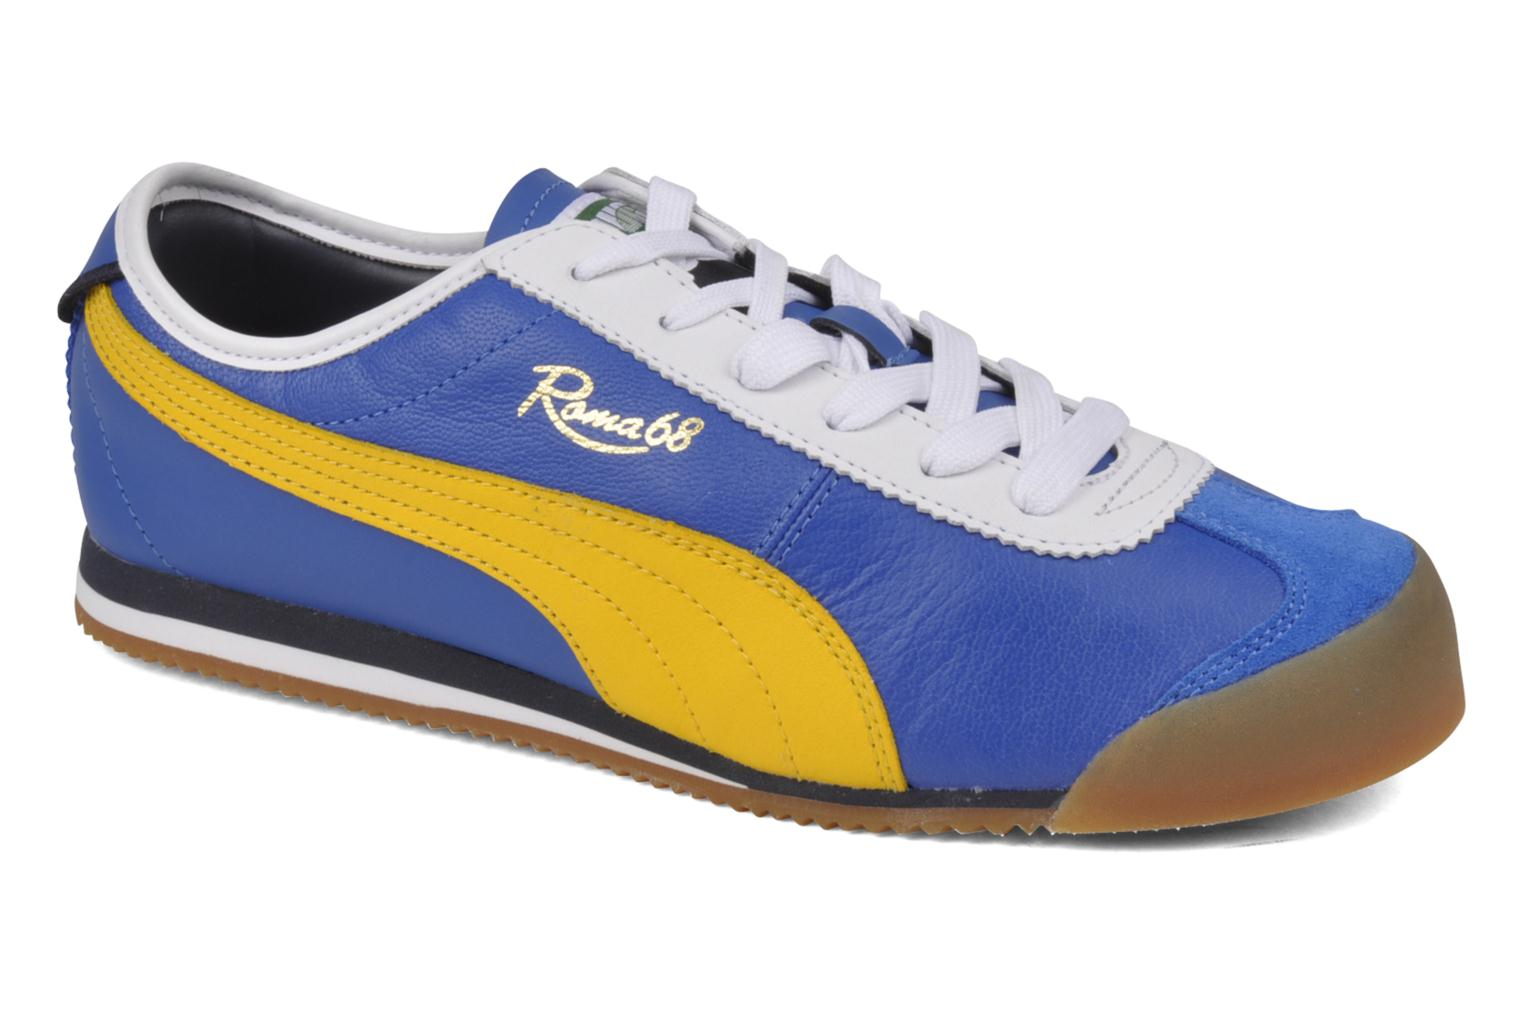 Puma Roma 68 Vintage Trainers in Blue at Sarenza.co.uk (34812)